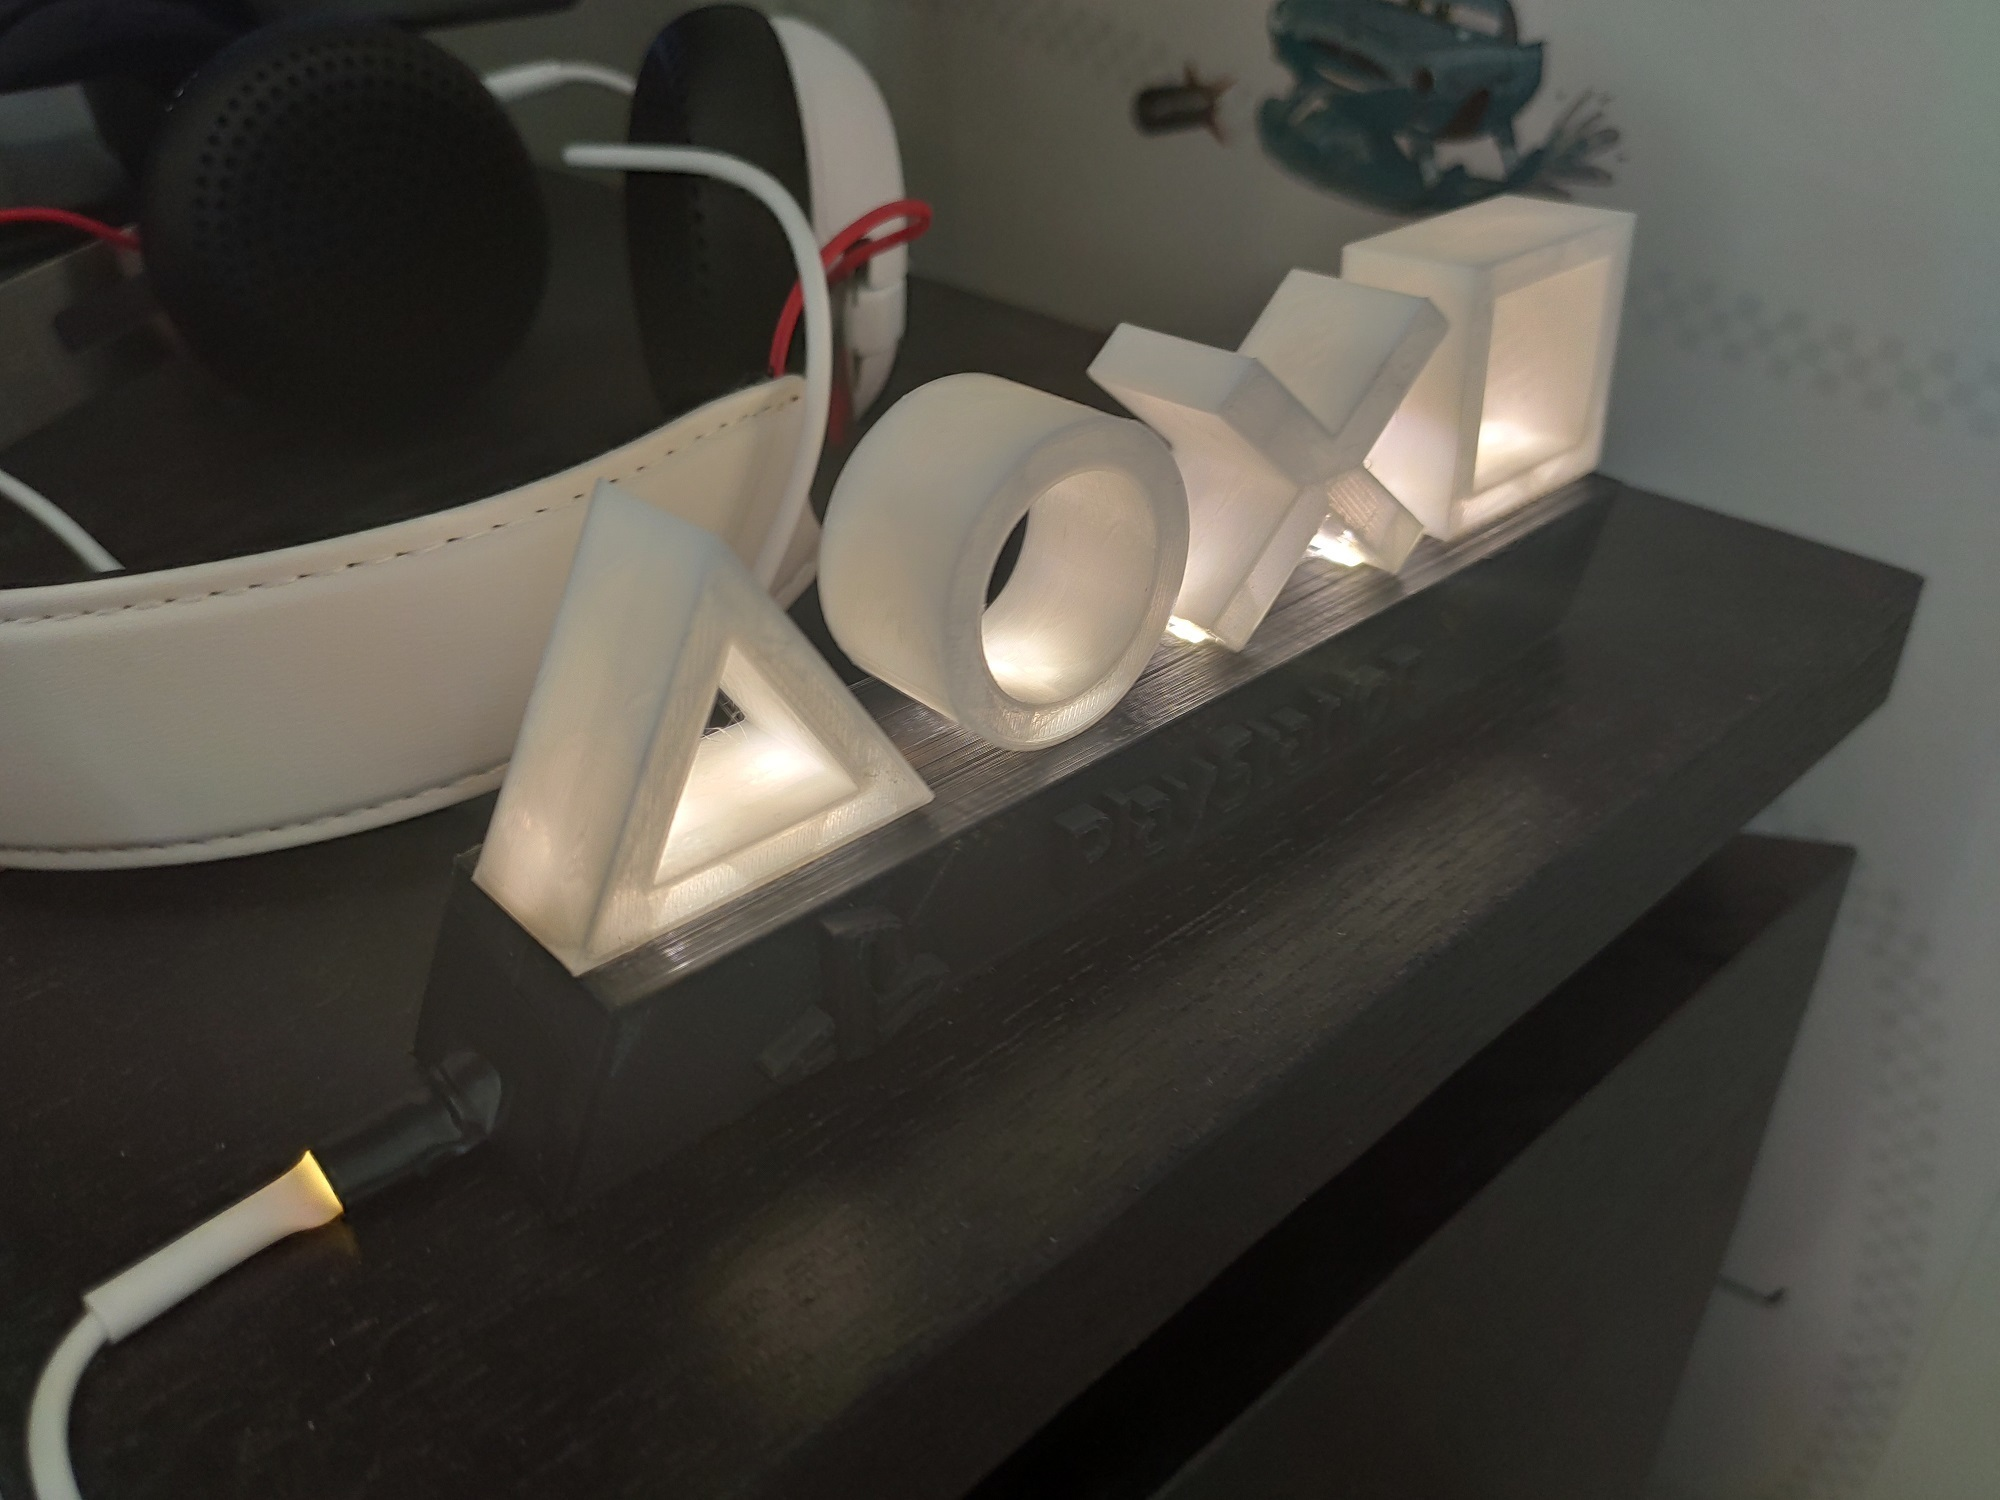 PS4 lampe.jpg Download free STL file Playstation lamp • Template to 3D print, ygallois